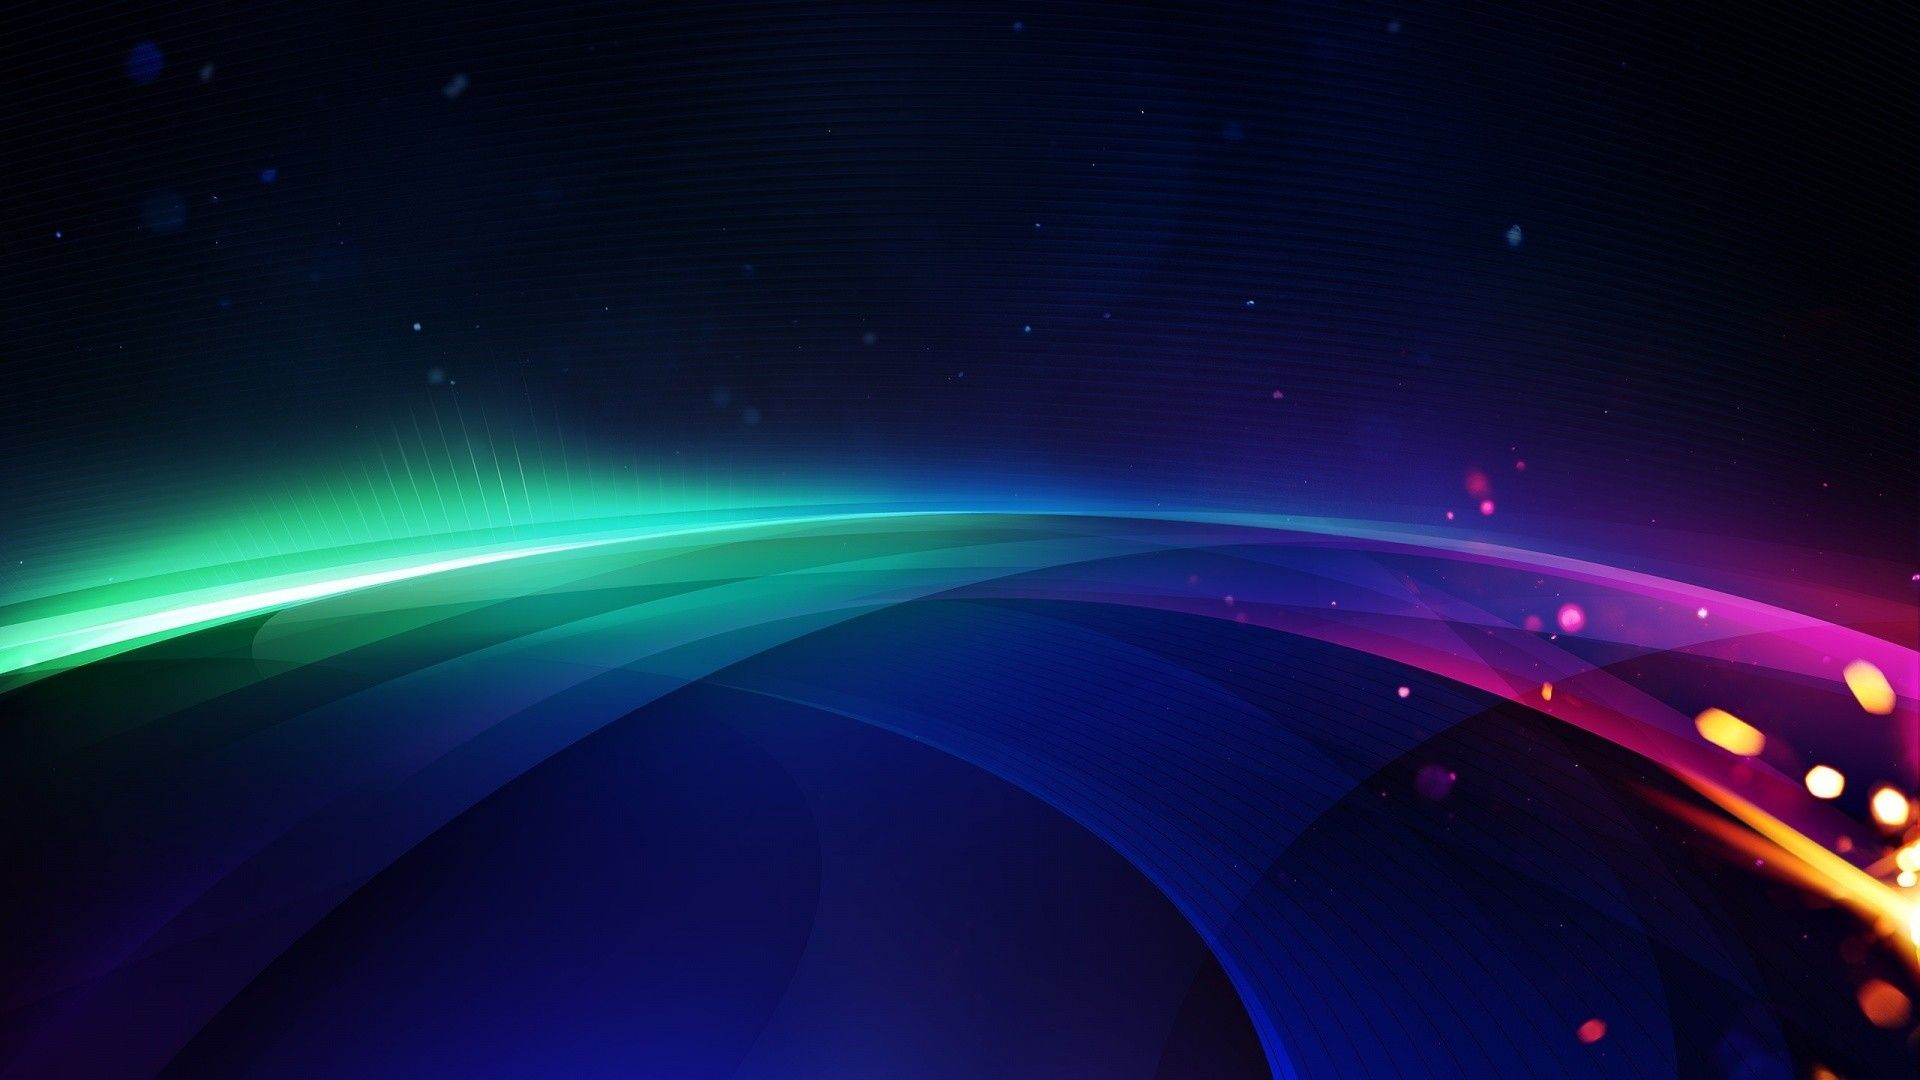 Awesome Abstract Colorful Desktop Wallpaper Hd images in